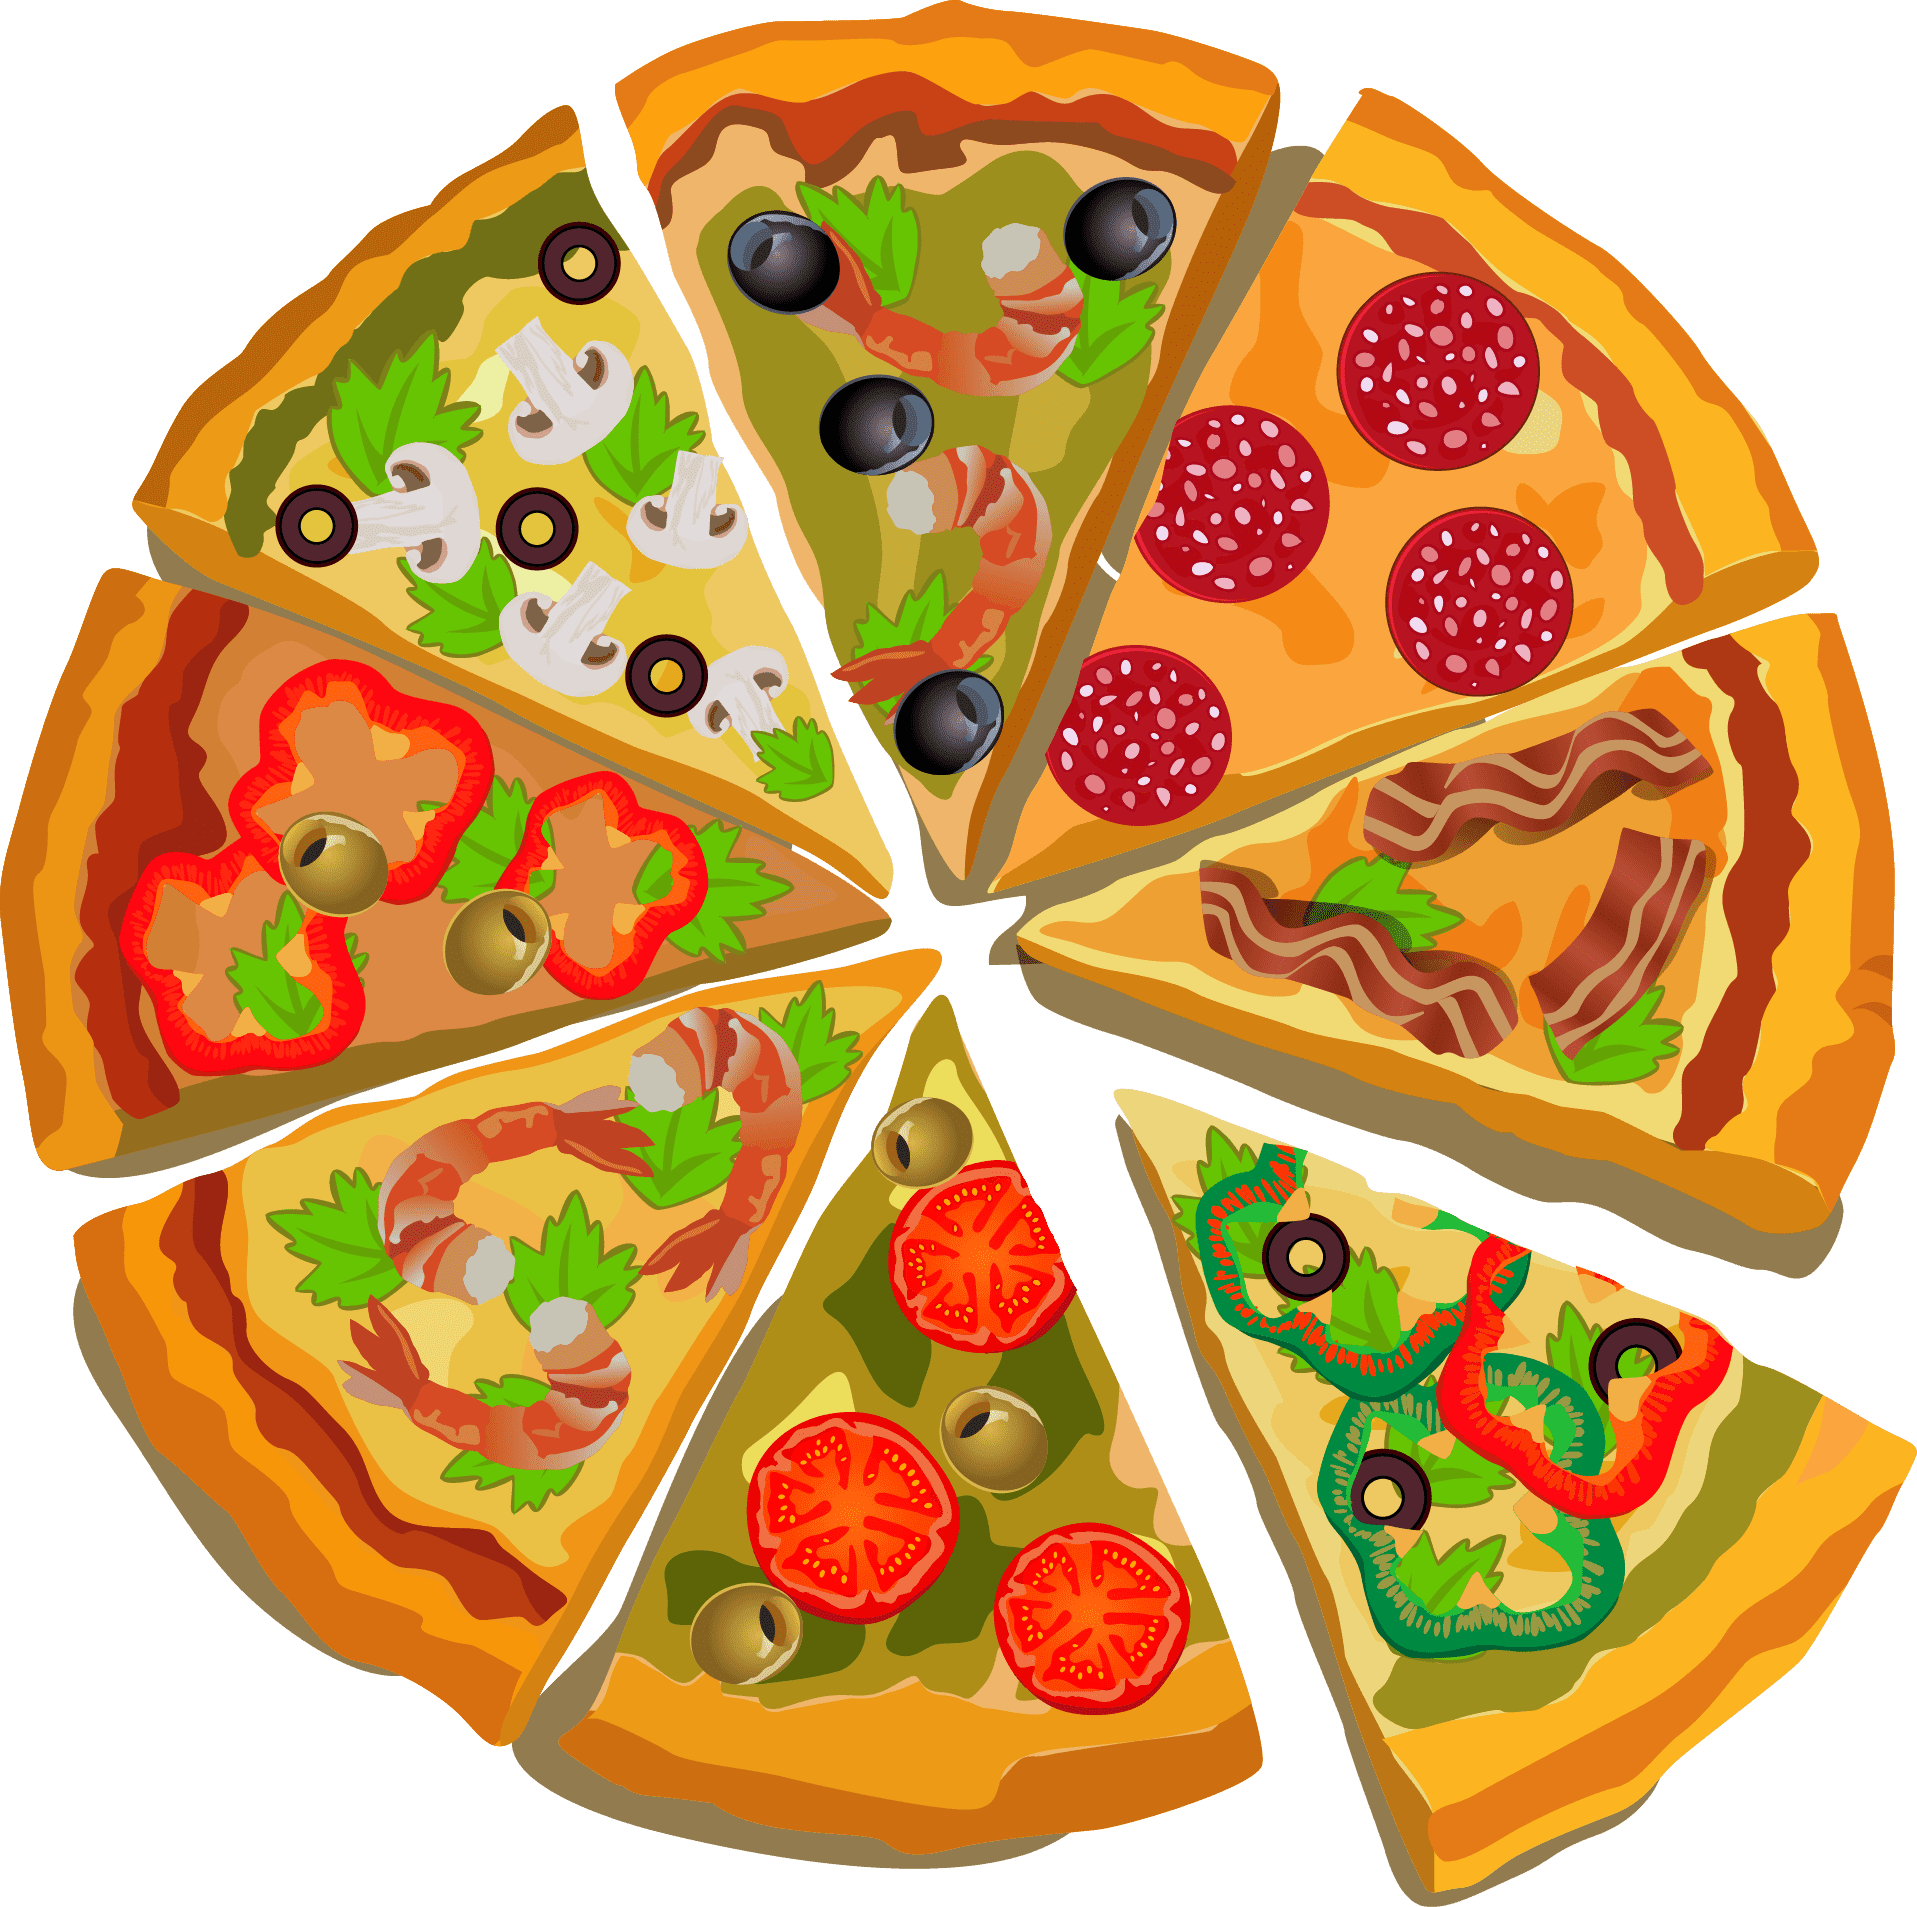 Pin pngsector pizza.